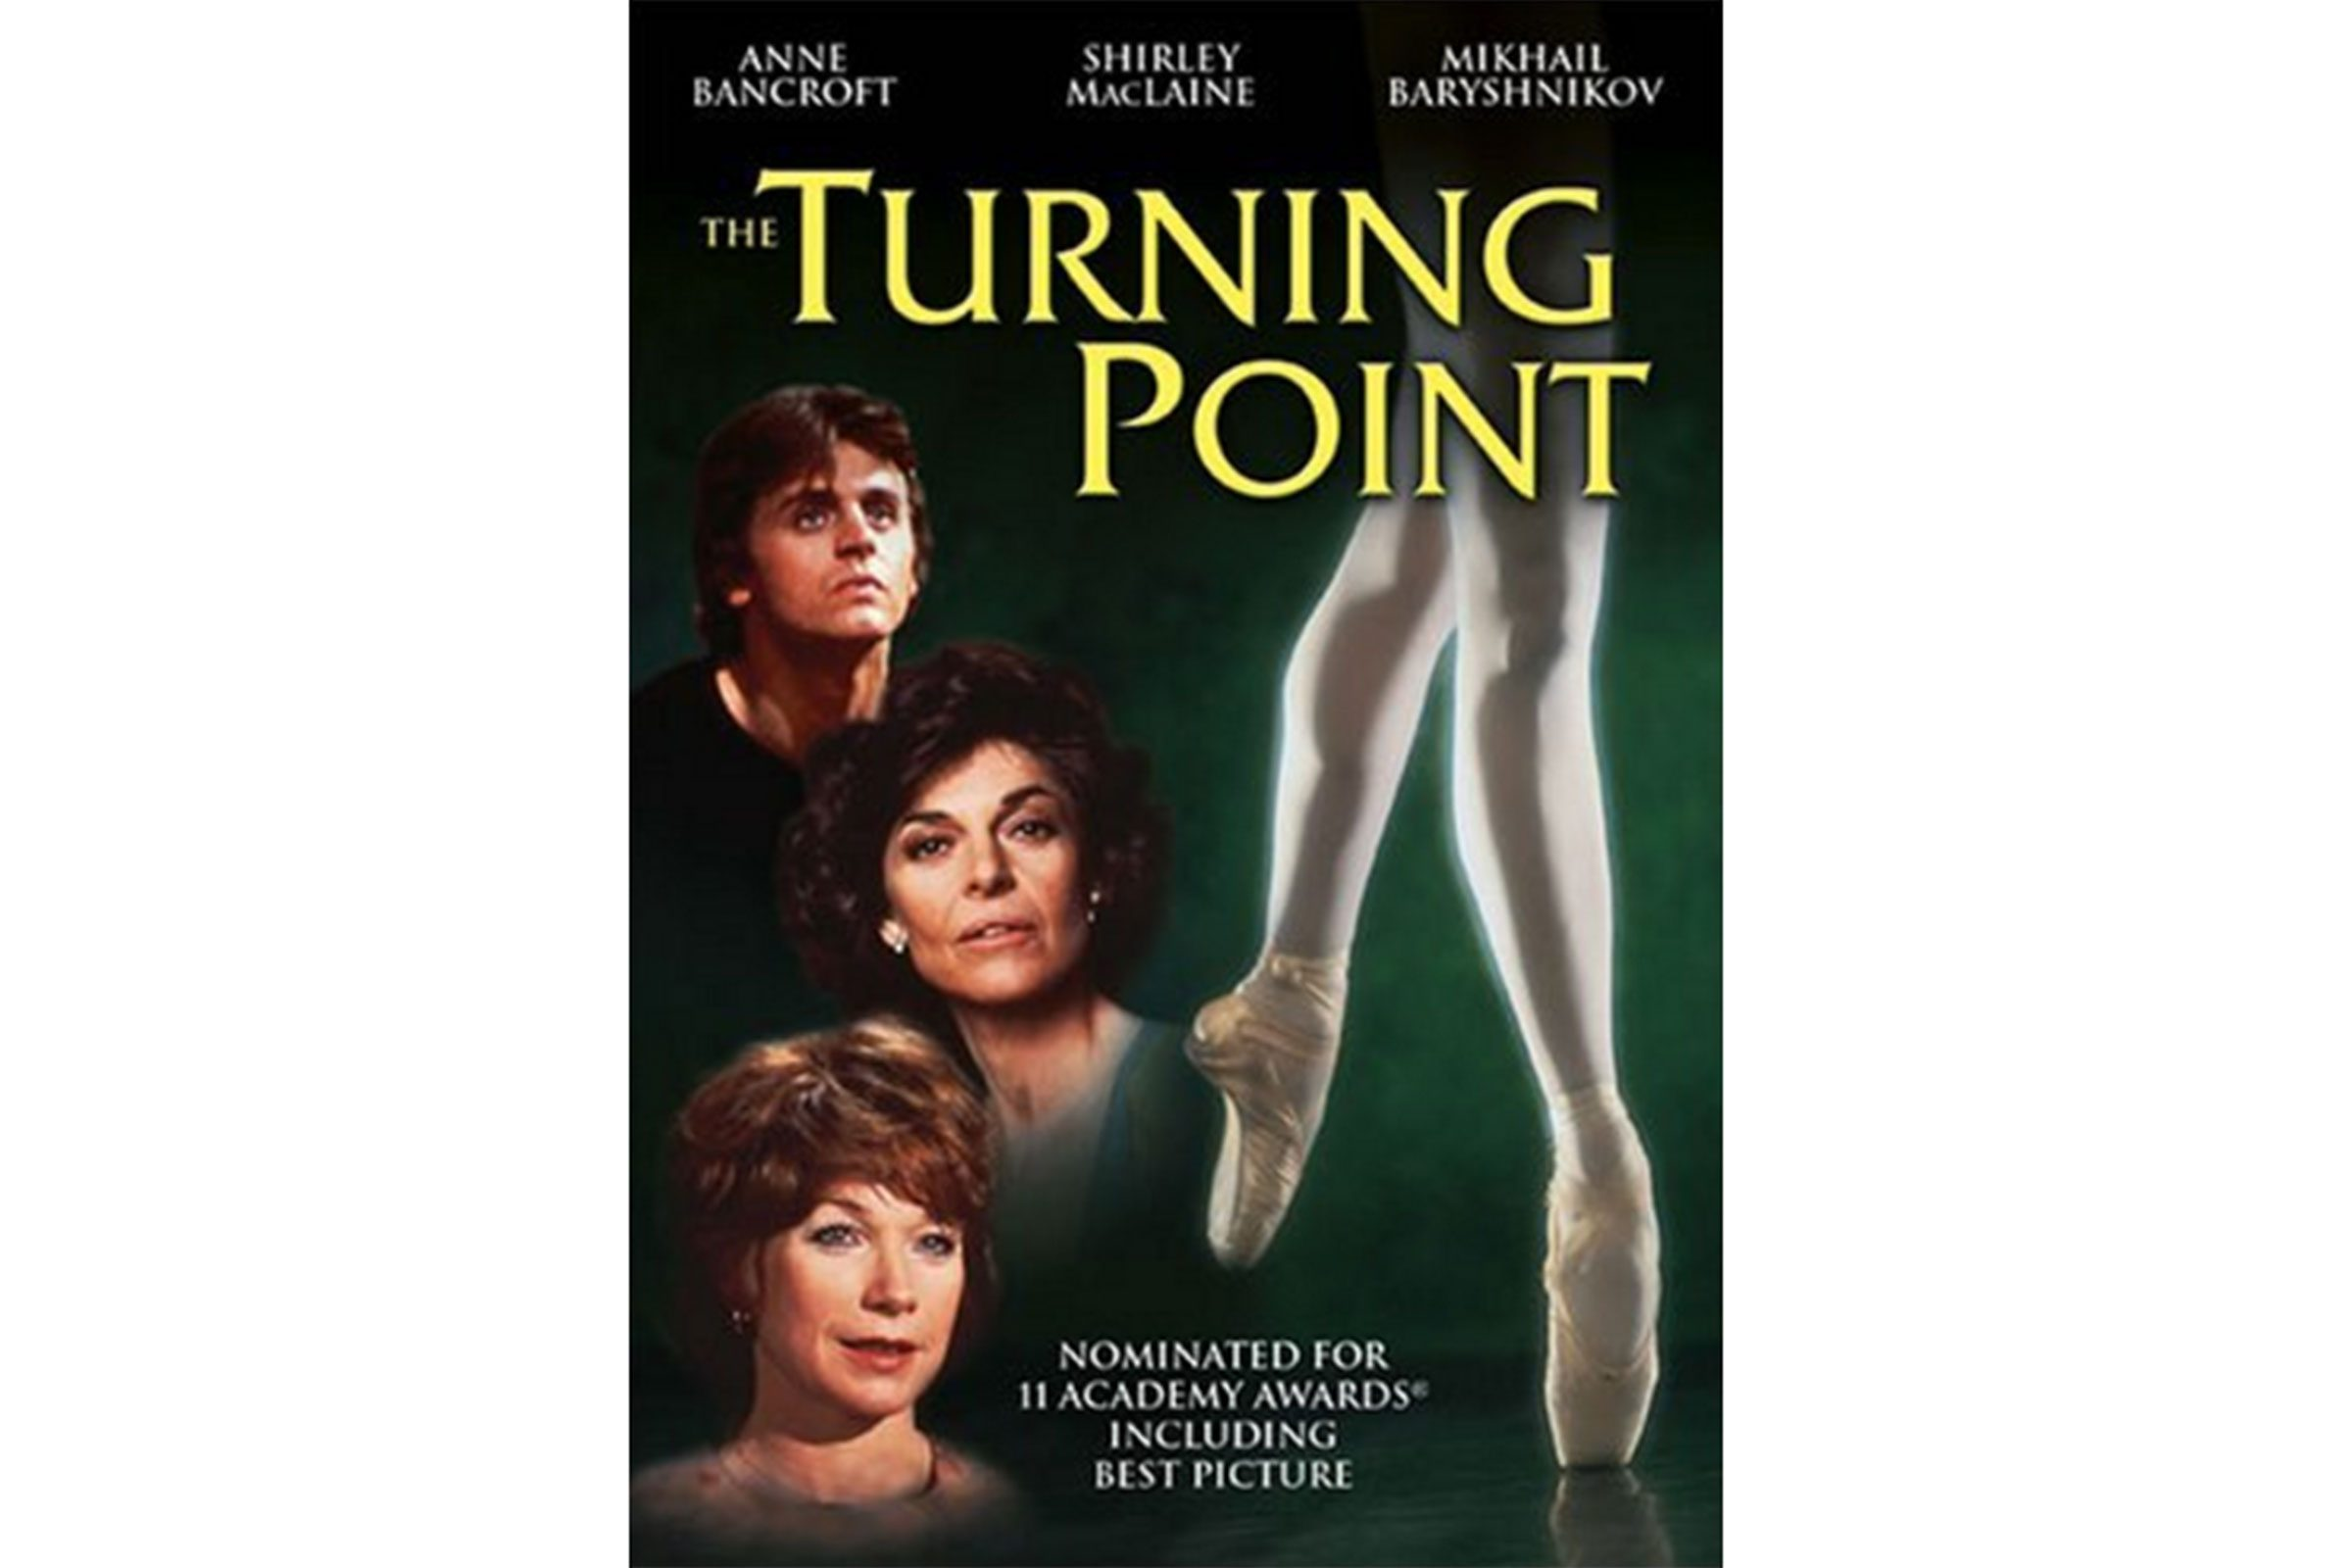 02-Dance-Movies-To-Get-Your-Feet-Moving-The-Turning-Point